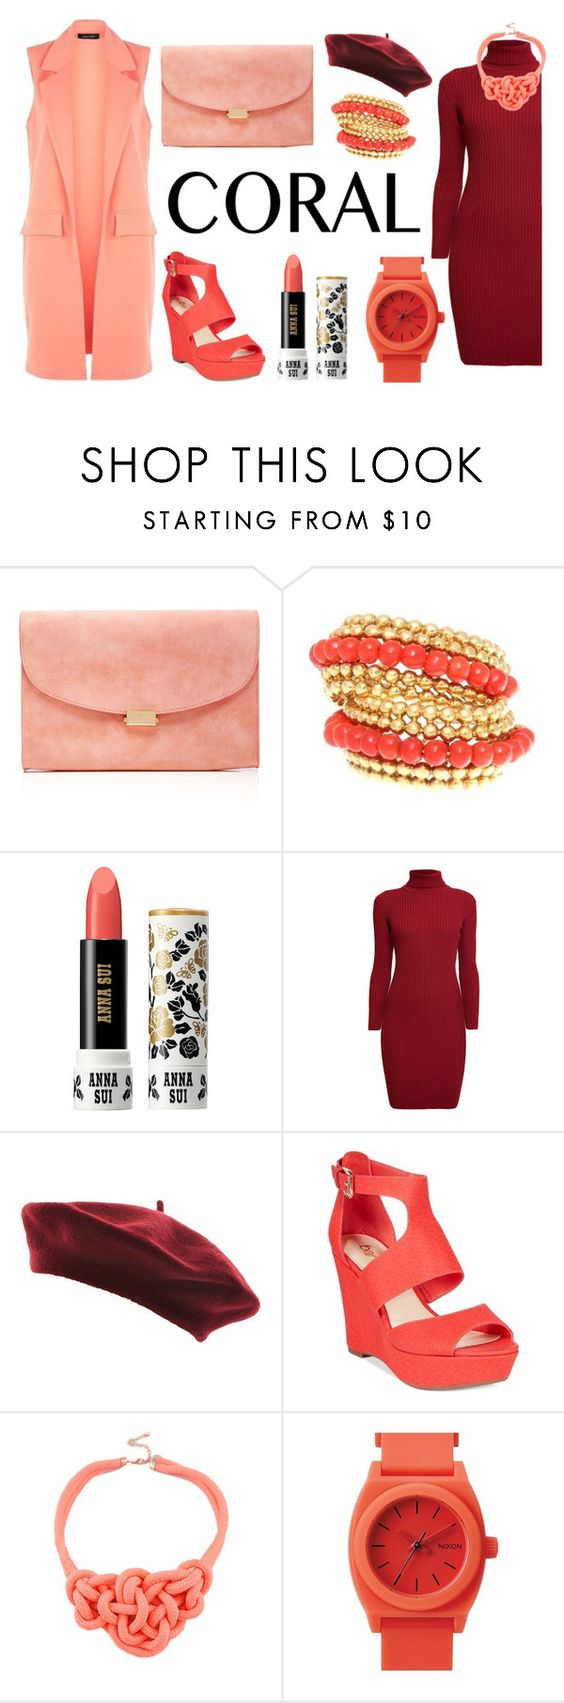 """Corals Combined with Heavy-Red."" by harningdipta on Polyvore featuring Mansur Gavriel, Anna Sui, Rumour London, Bar III, Nixon, women's clothing, women, female, woman and misses"